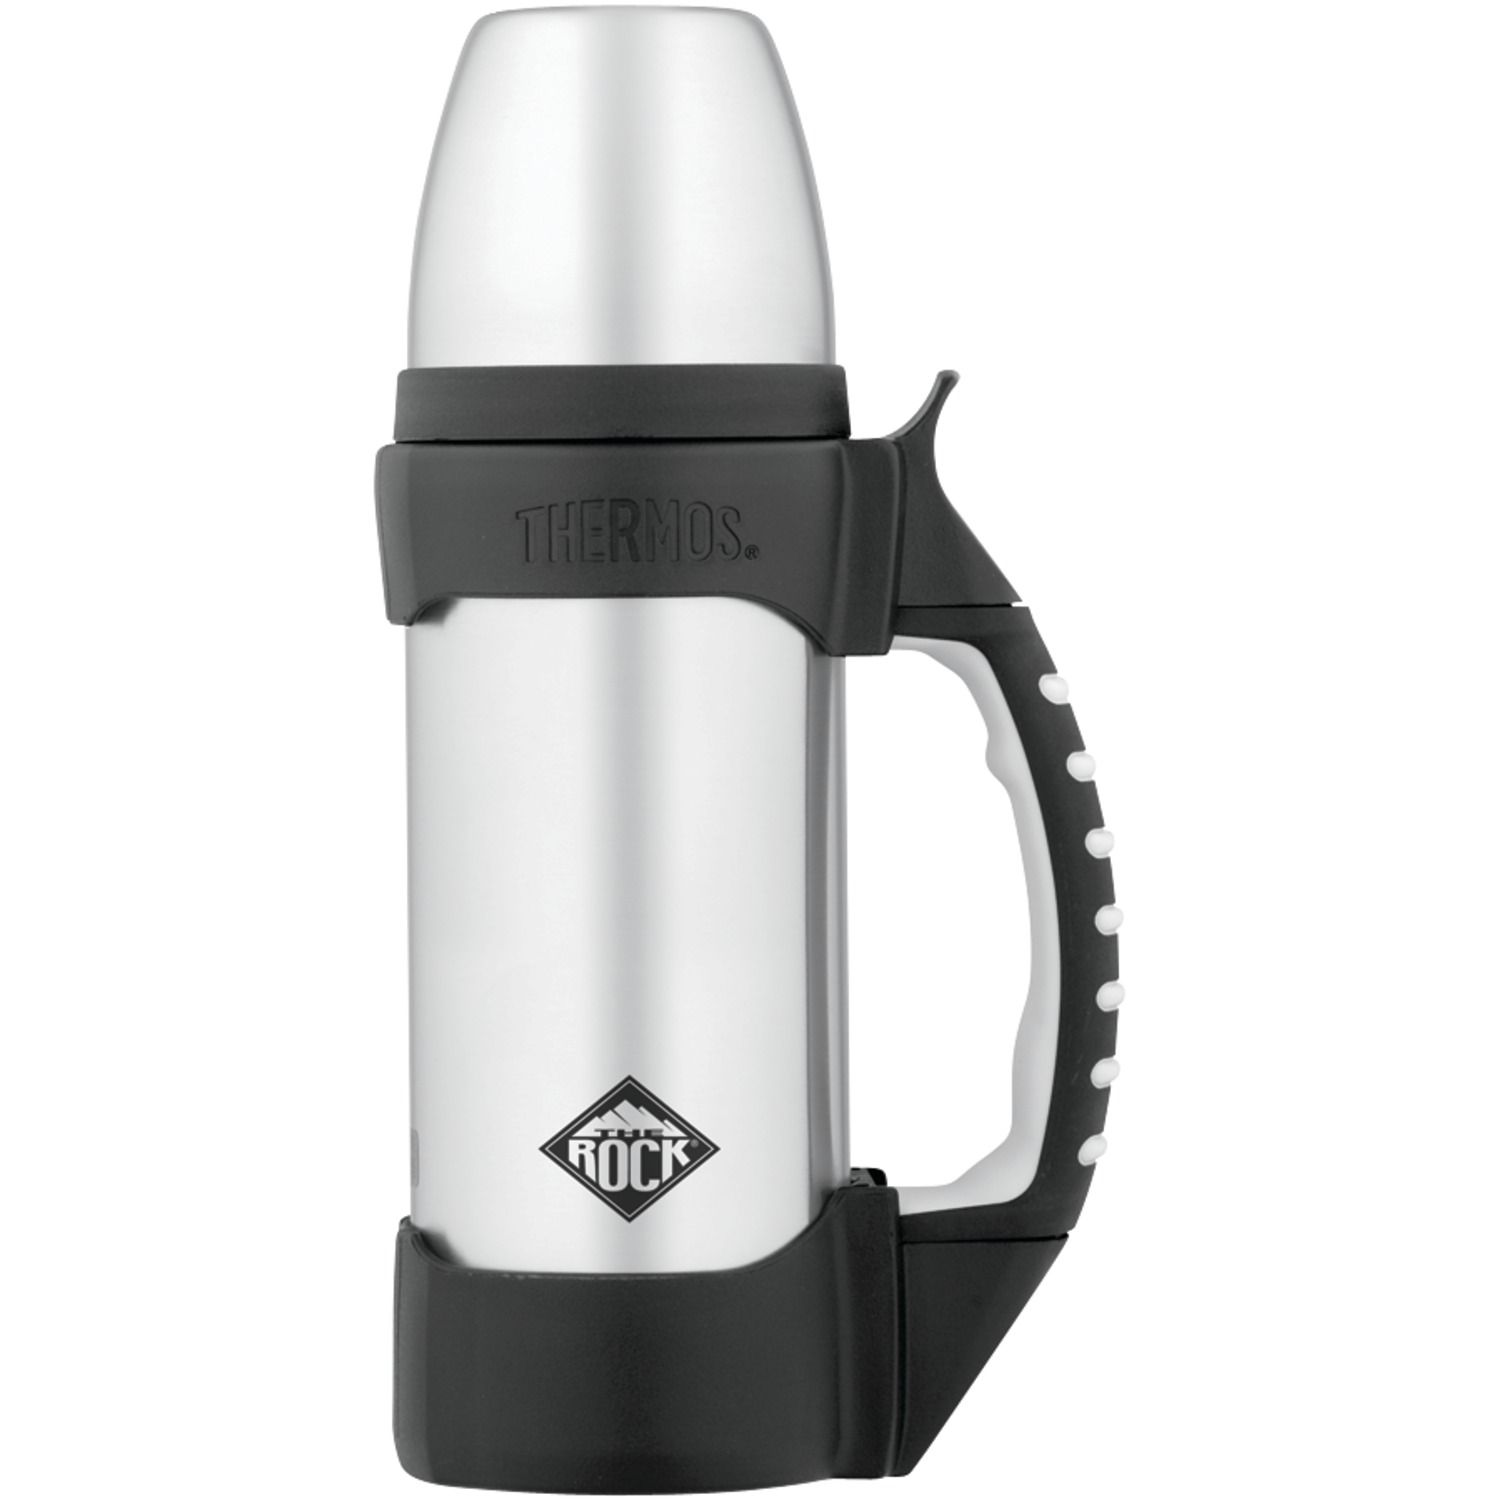 Thermos 1.1 qt Stainless Steel Beverage Bottle